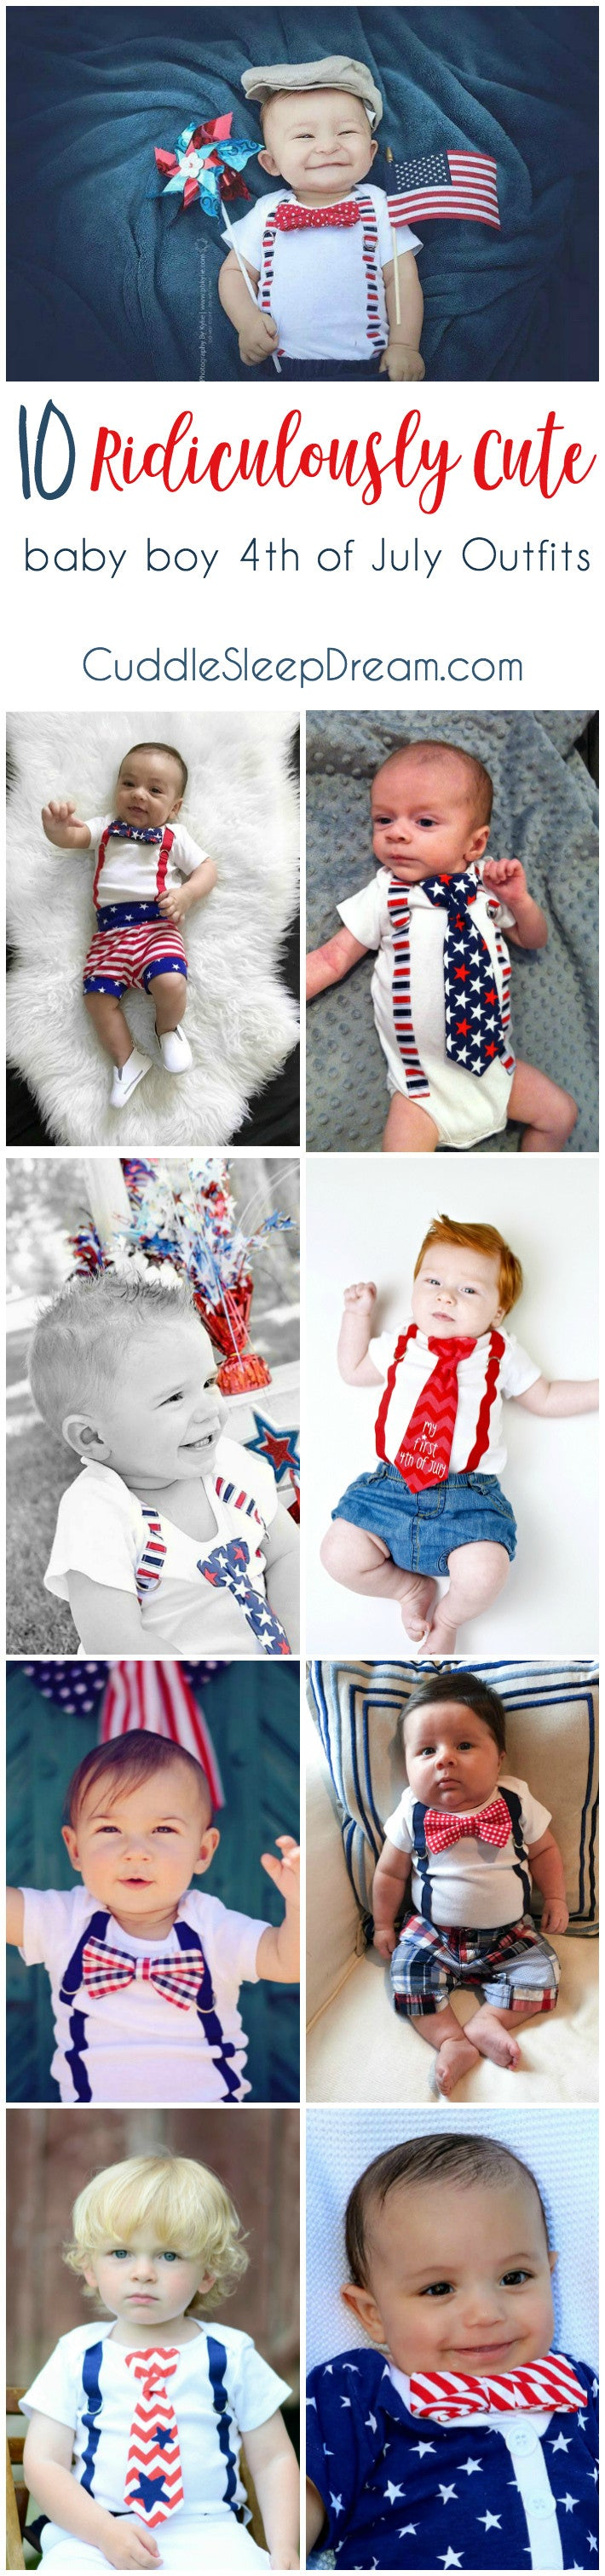 baby boy 4th of july outfit ideas